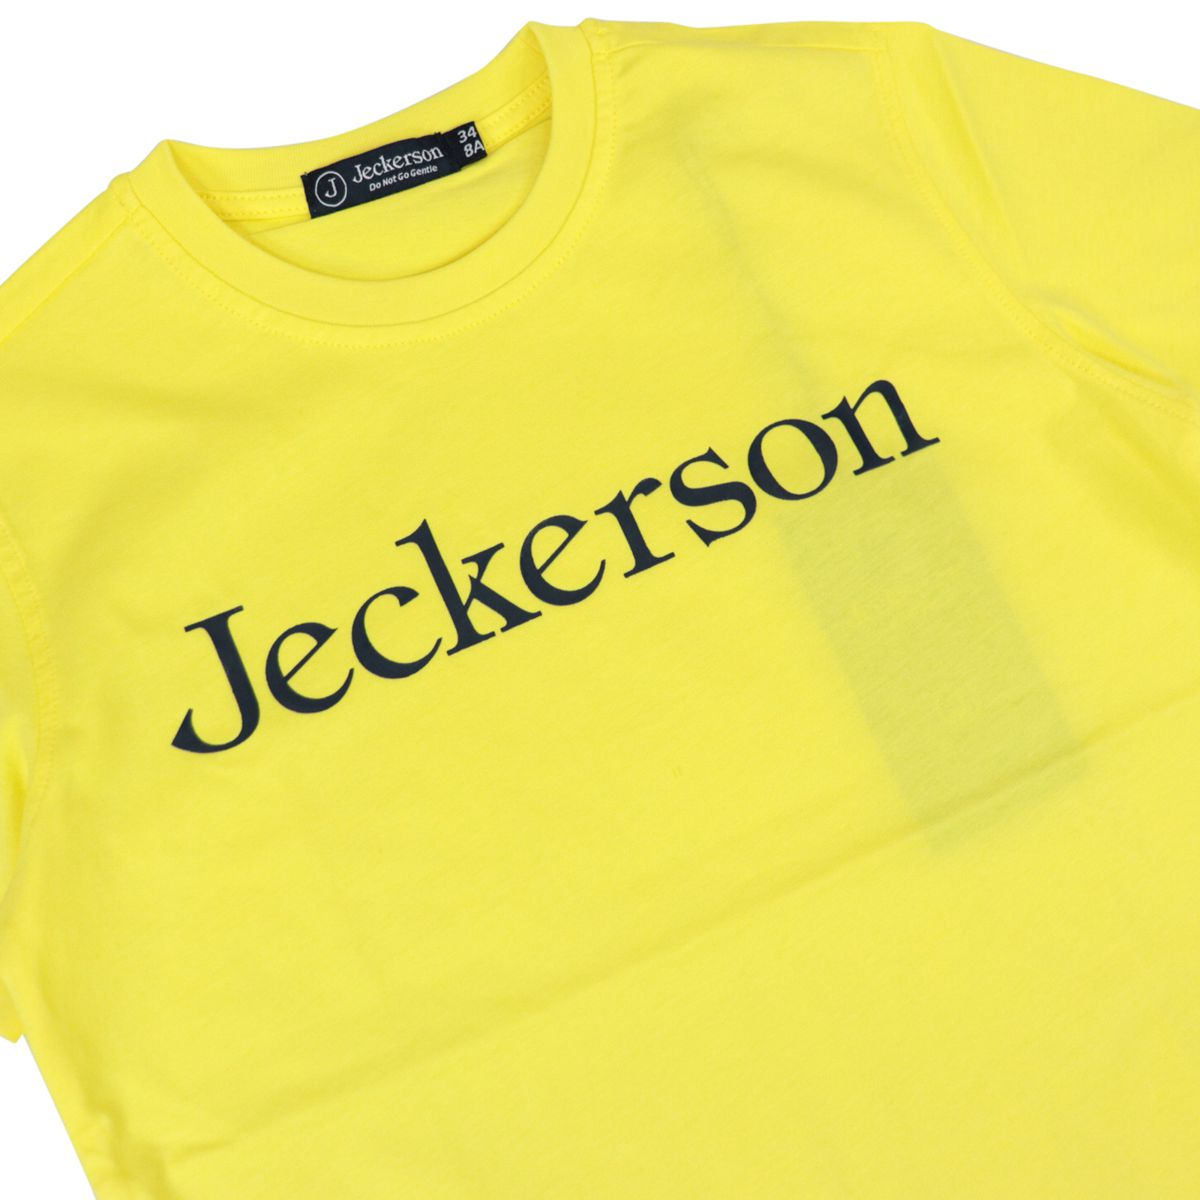 Cotton t-shirt with front logo lettering Yellow Jeckerson